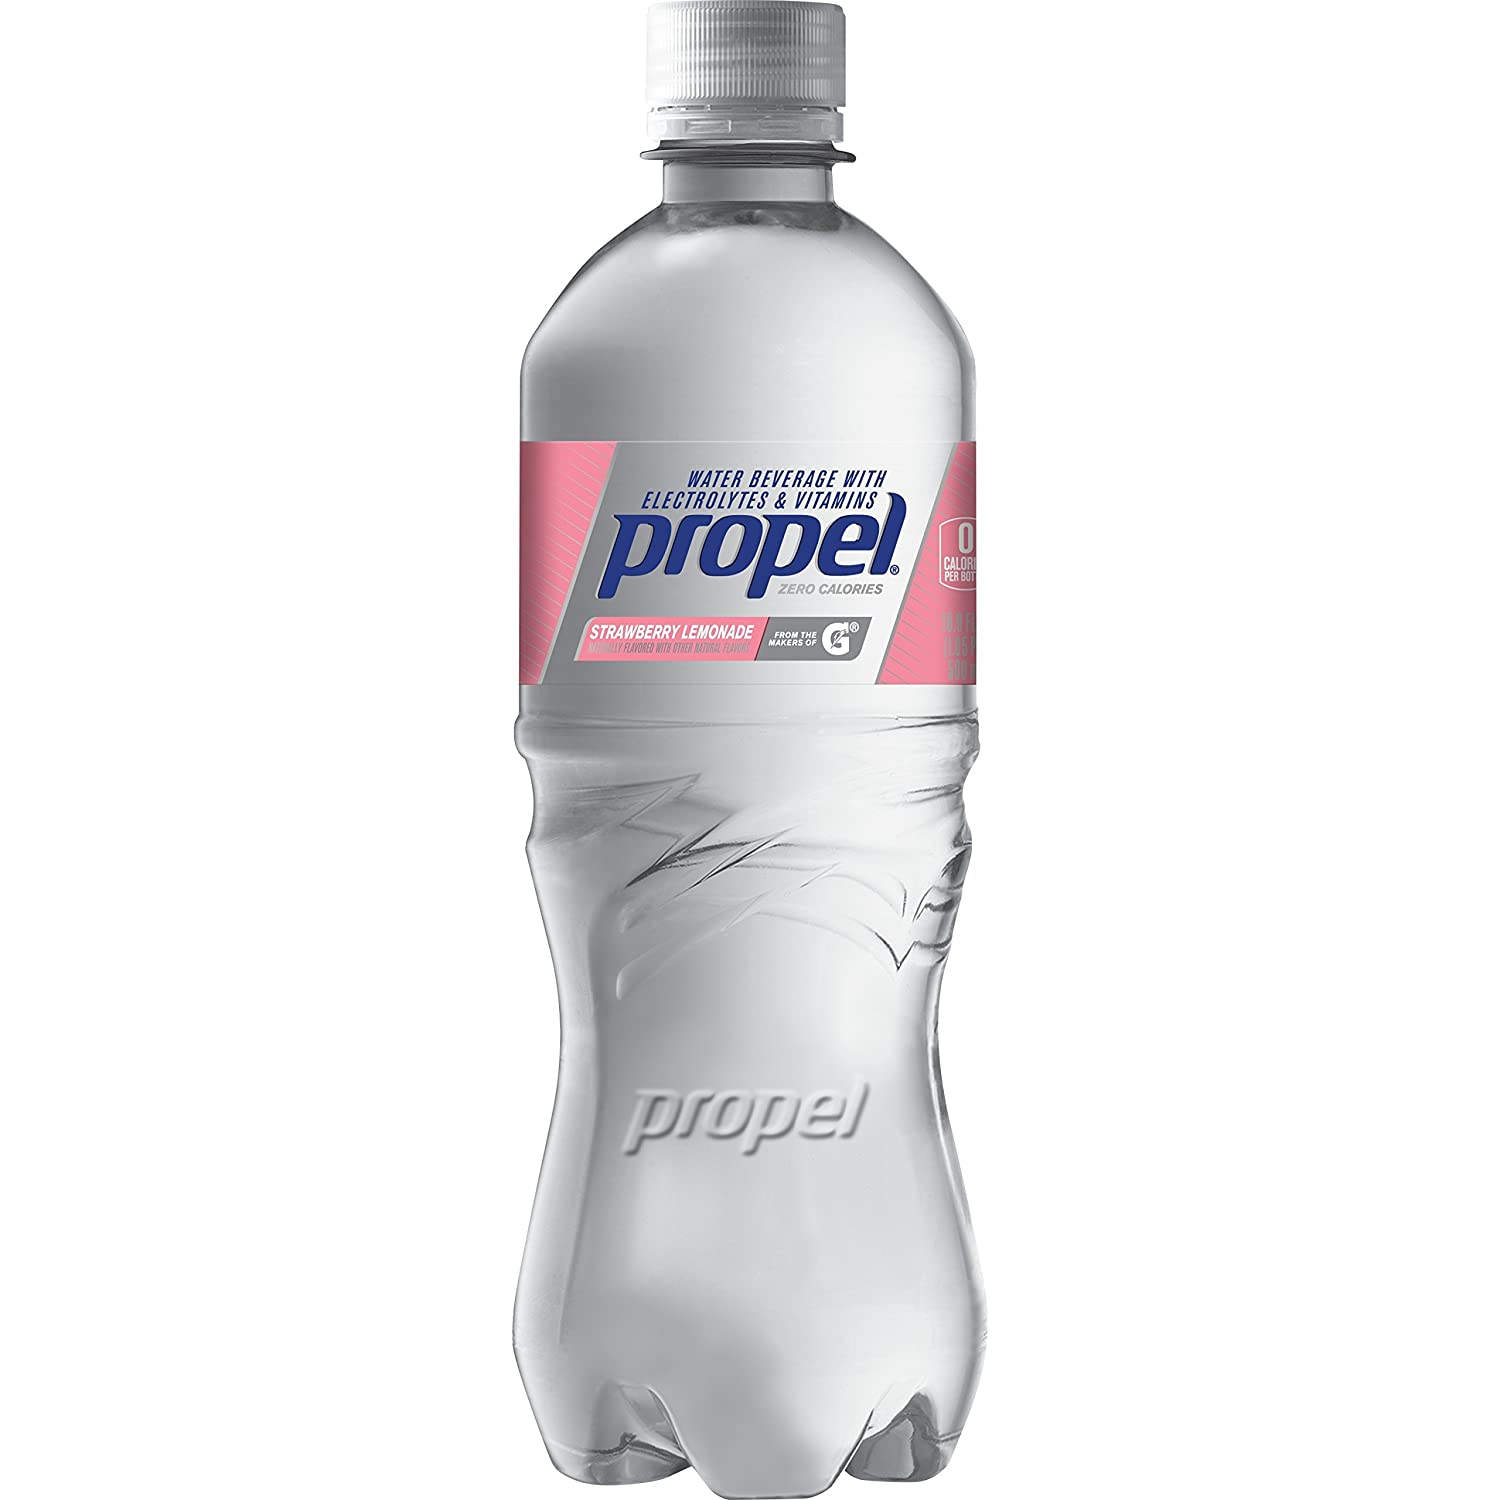 450c779509 Amazon.com: Propel Strawberry Lemonade, Zero Calorie Sports Drinking Water  with Antioxidant Vitamins C & E, 16.9 Ounce - Pack of 6: Prime Pantry